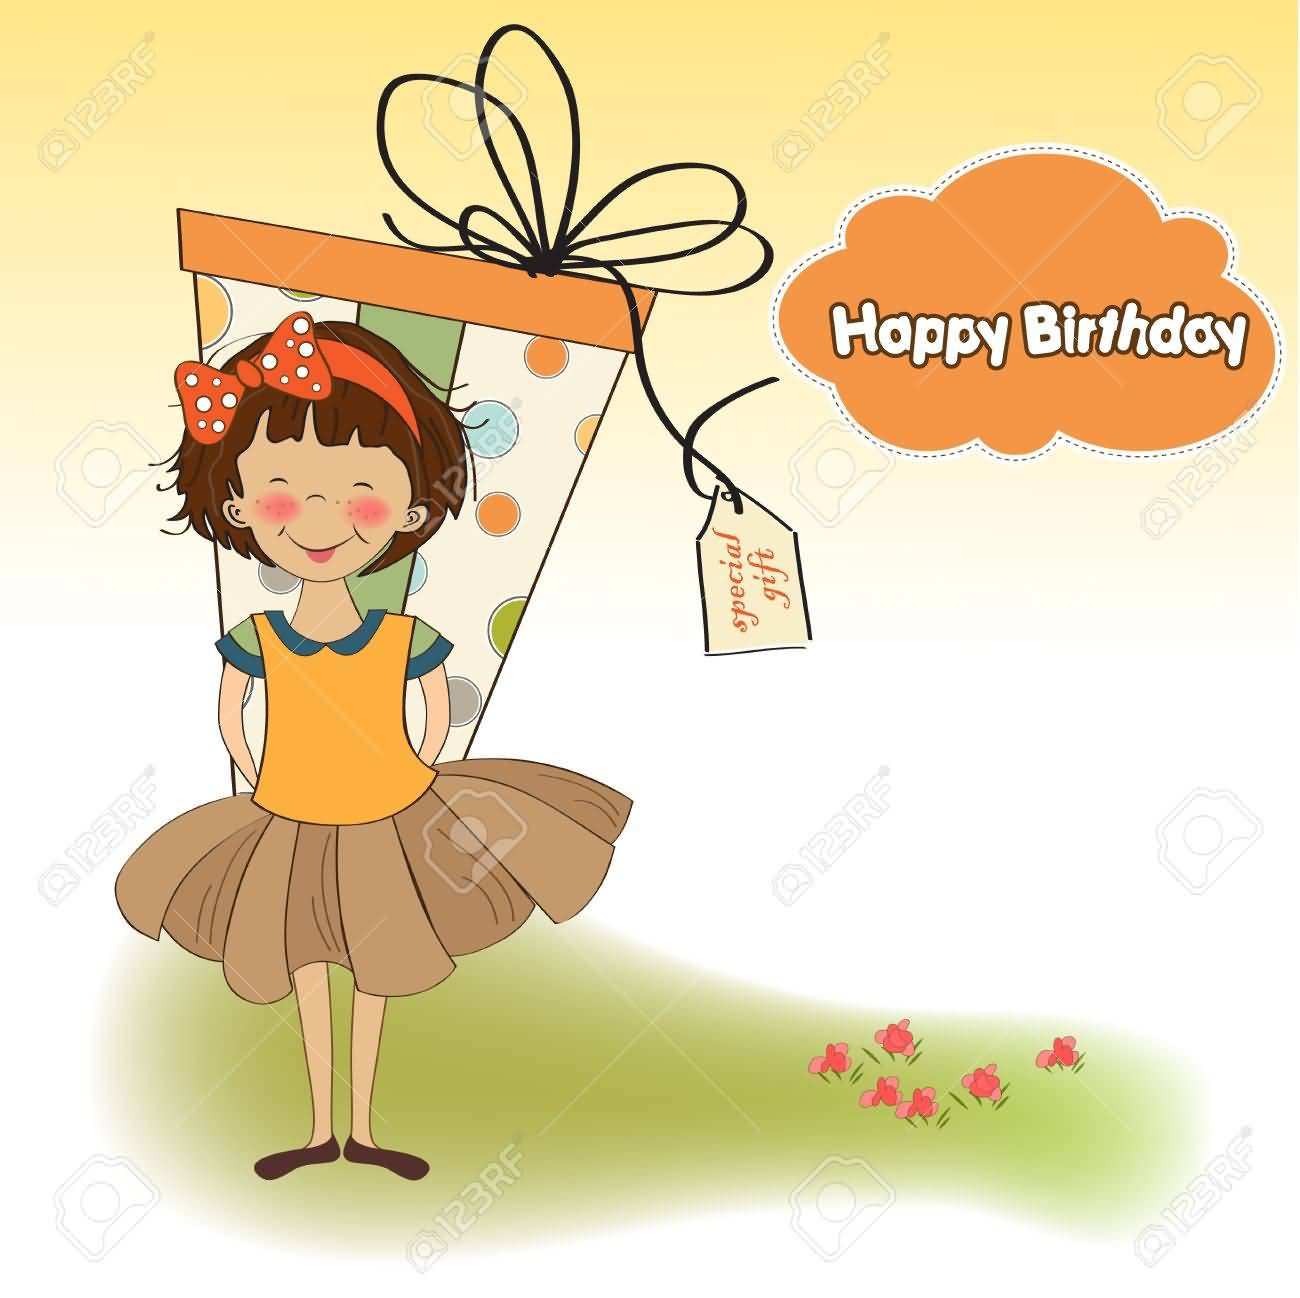 Riveting Girls Birthday Wishes Ecards Happy Birthday Lady Photos Happy Birthday My Lady Drawing Birthday Wishes gifts Happy Birthday Sweet Lady